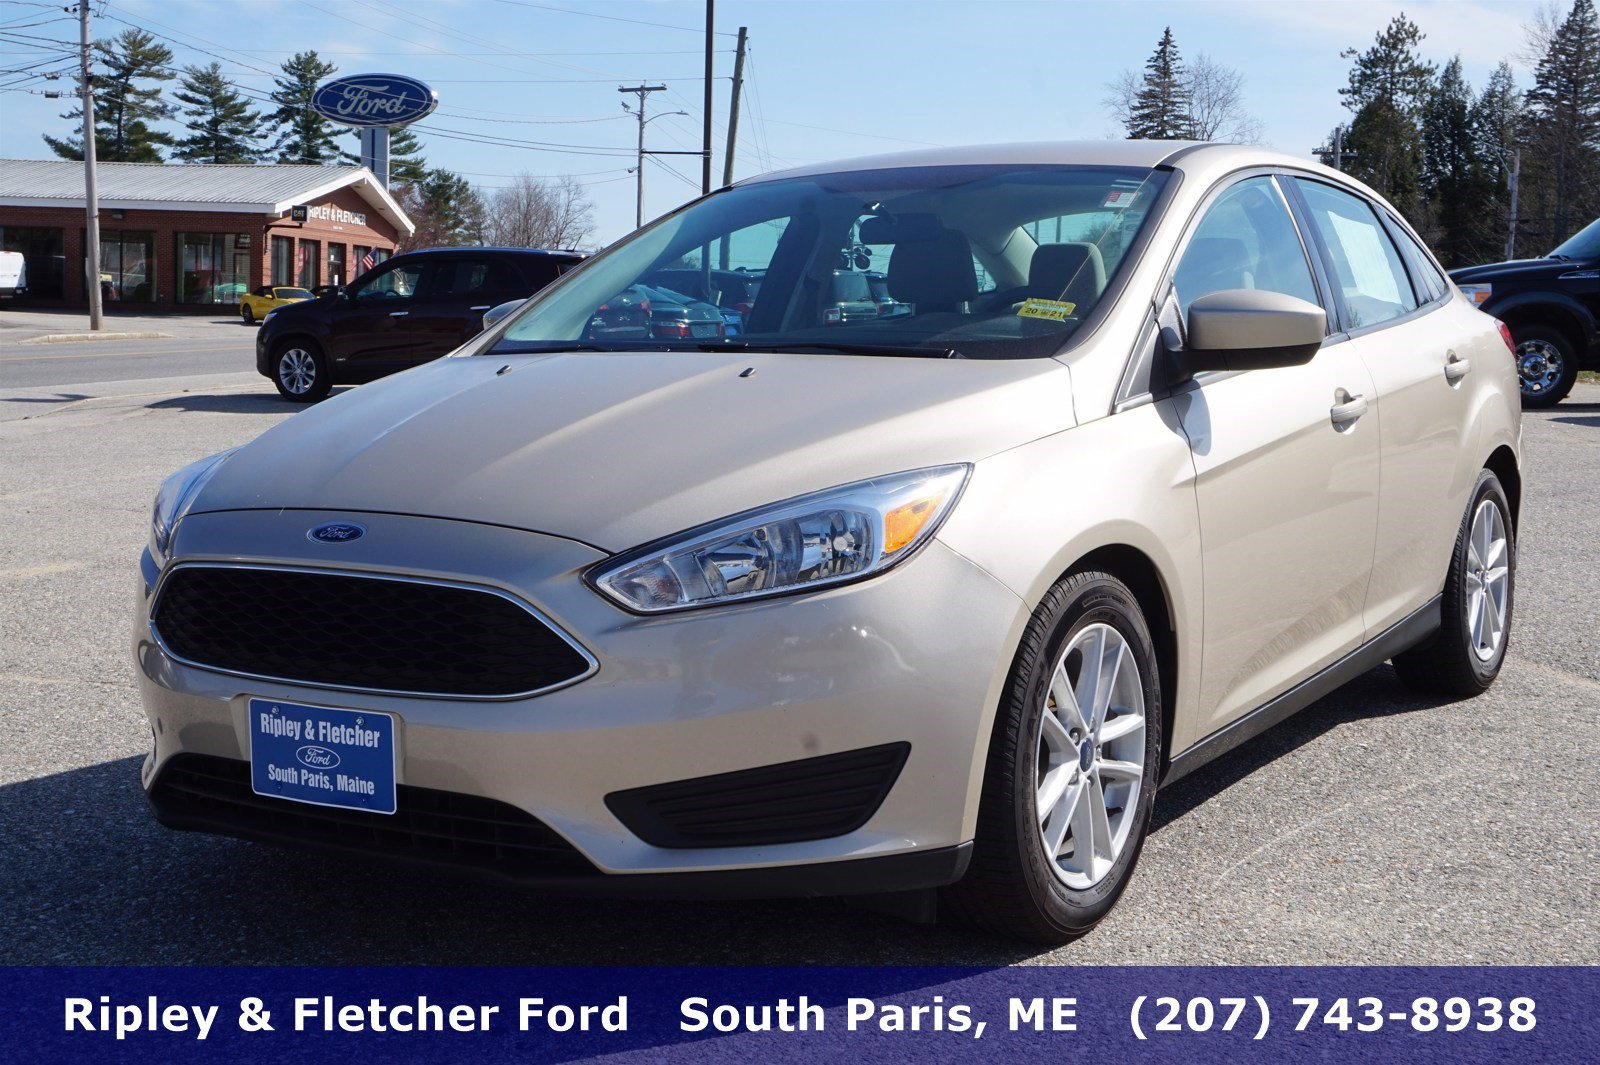 ripley fletcher ford south paris me 04281 car dealership and auto financing autotrader ripley fletcher ford south paris